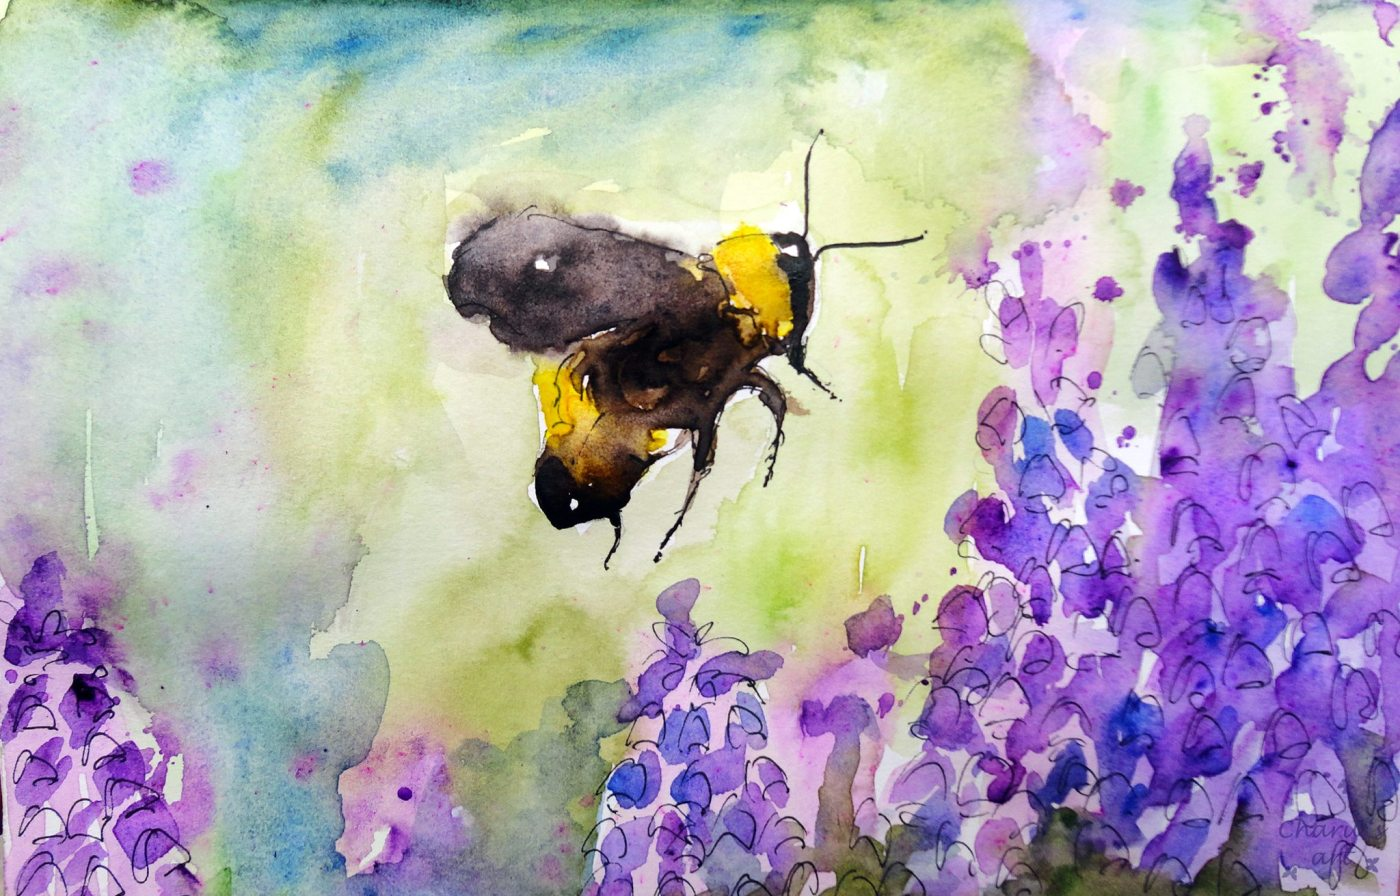 Doodlewash - Watercolor by Charu Jain of bumblebee